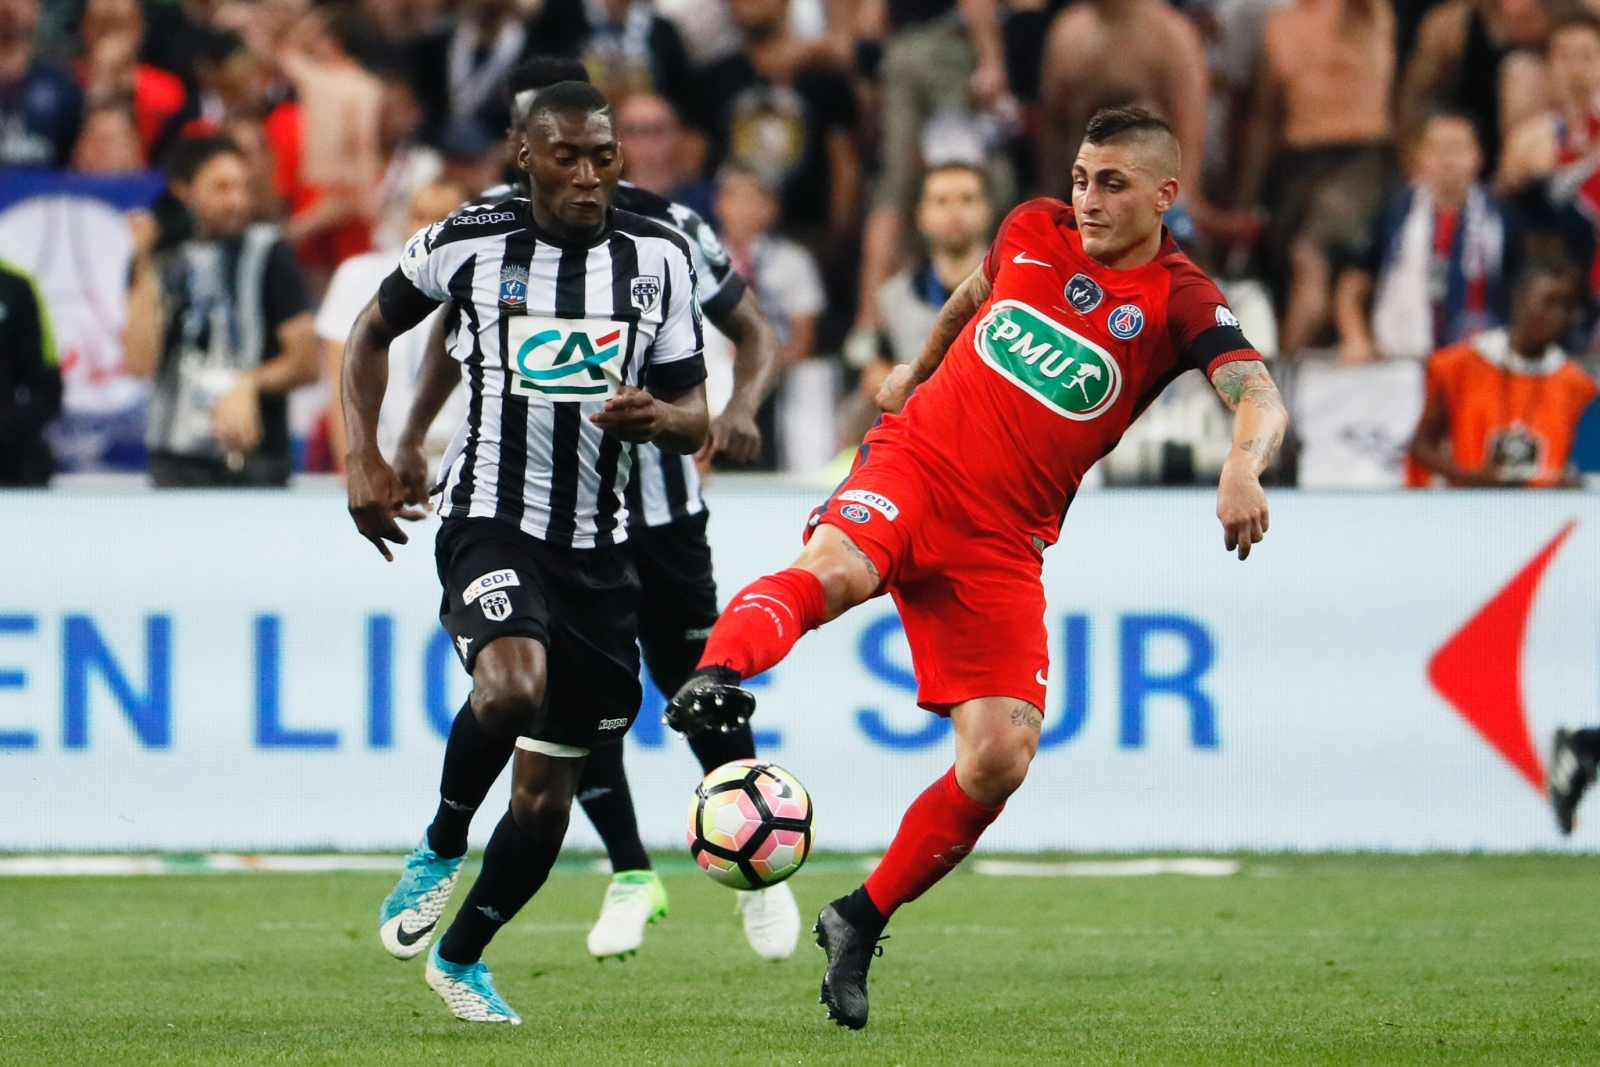 Barcelona target Verratti tells PSG: I'll stay if you buy champions